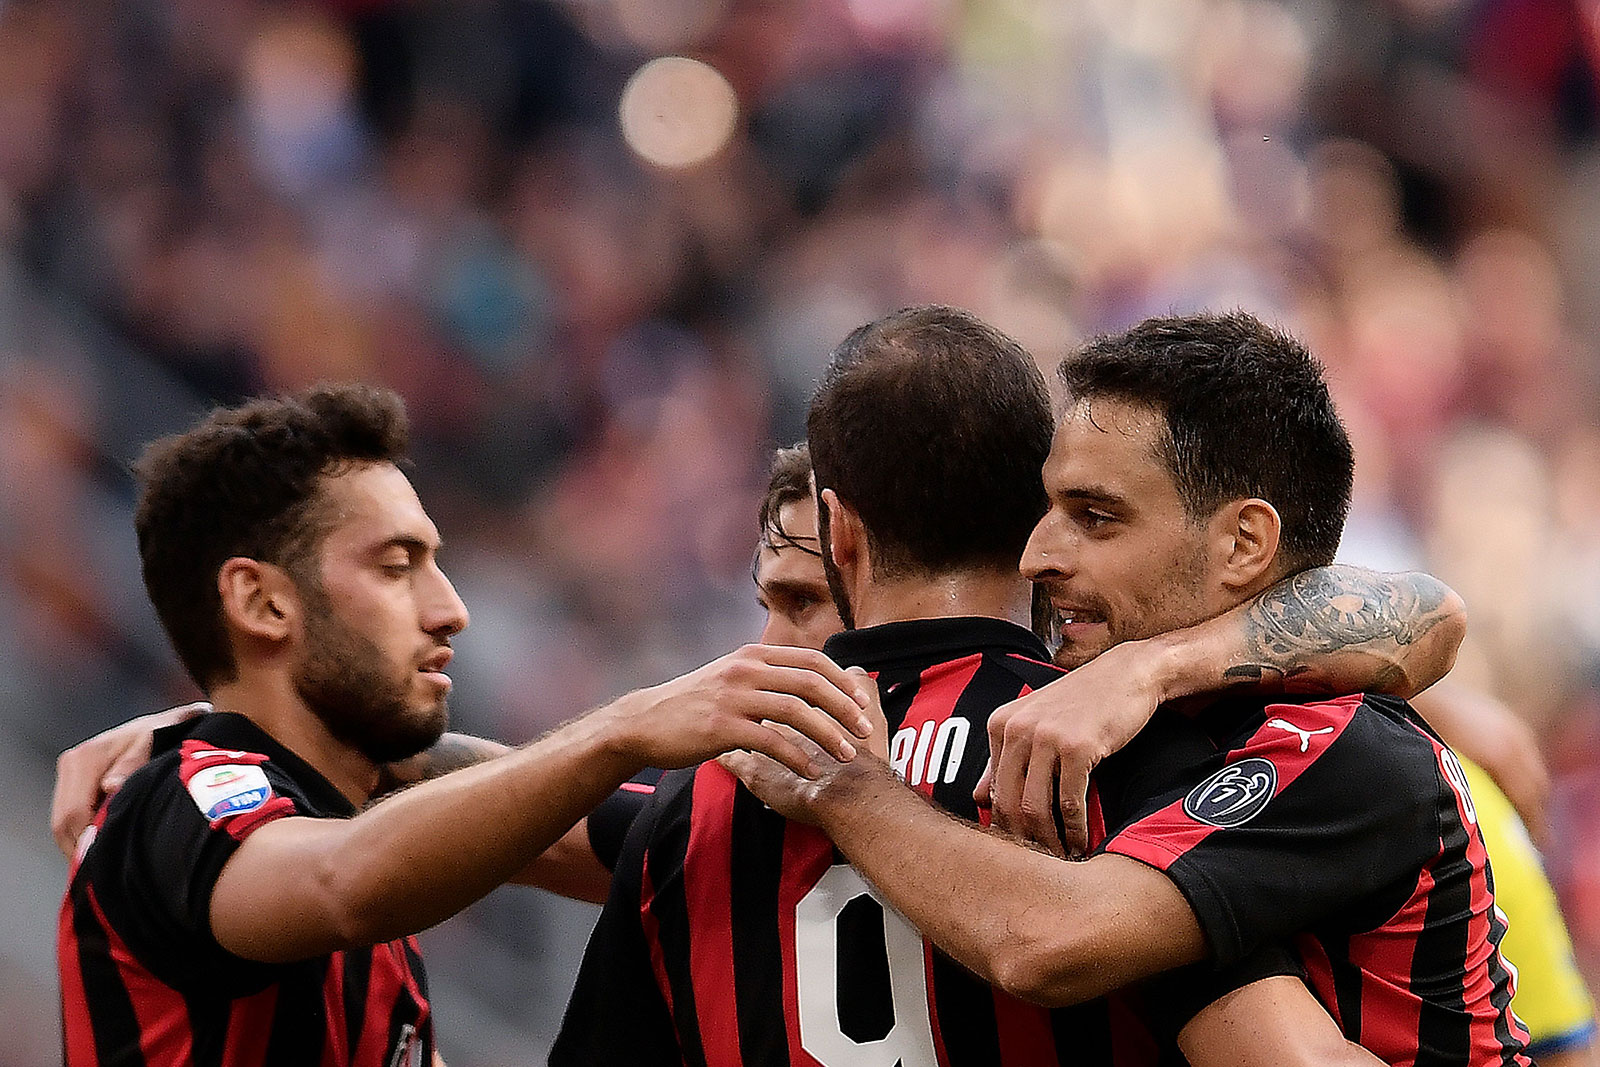 Giacomo Bonaventura, Gonzalo Higuain and Hakan Çalhanoğlu celebrating during Milan-Chievo at Stadio San Siro on October 7, 2018. (MARCO BERTORELLO/AFP/Getty Images)